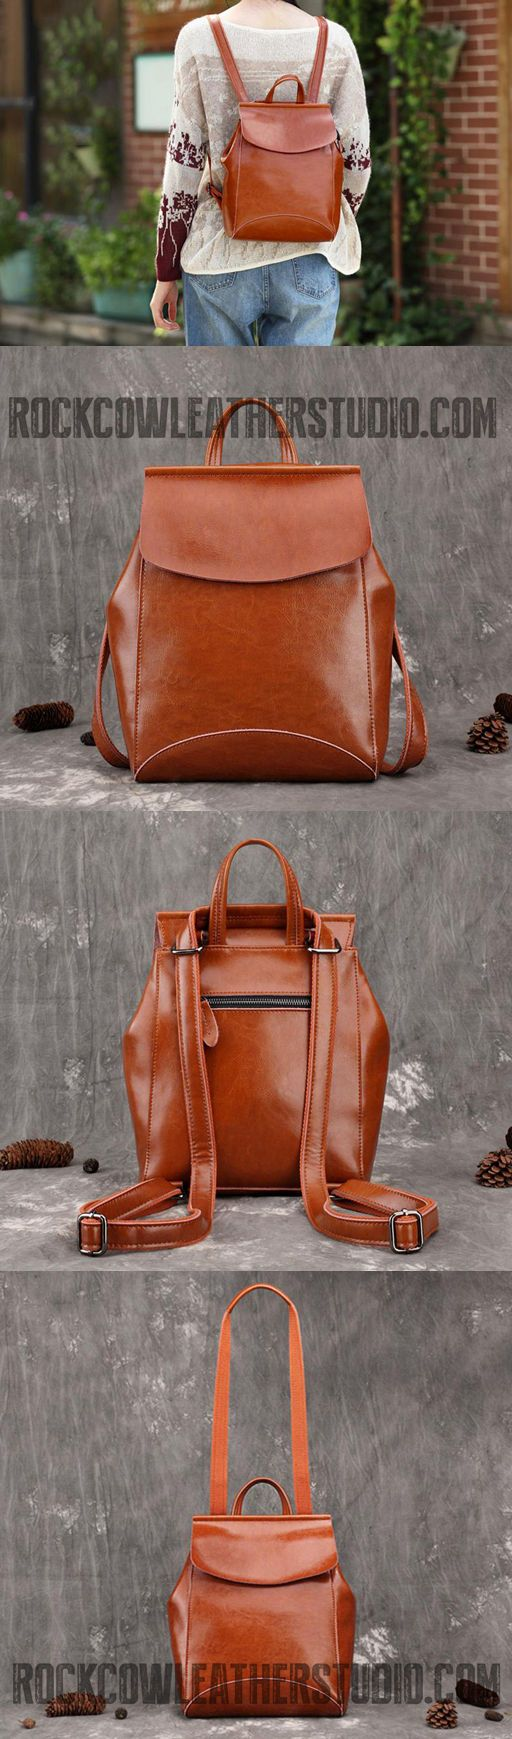 Vintage Leather College Backpack, Shoulder Bag, Fashion Handbags For Women 9212